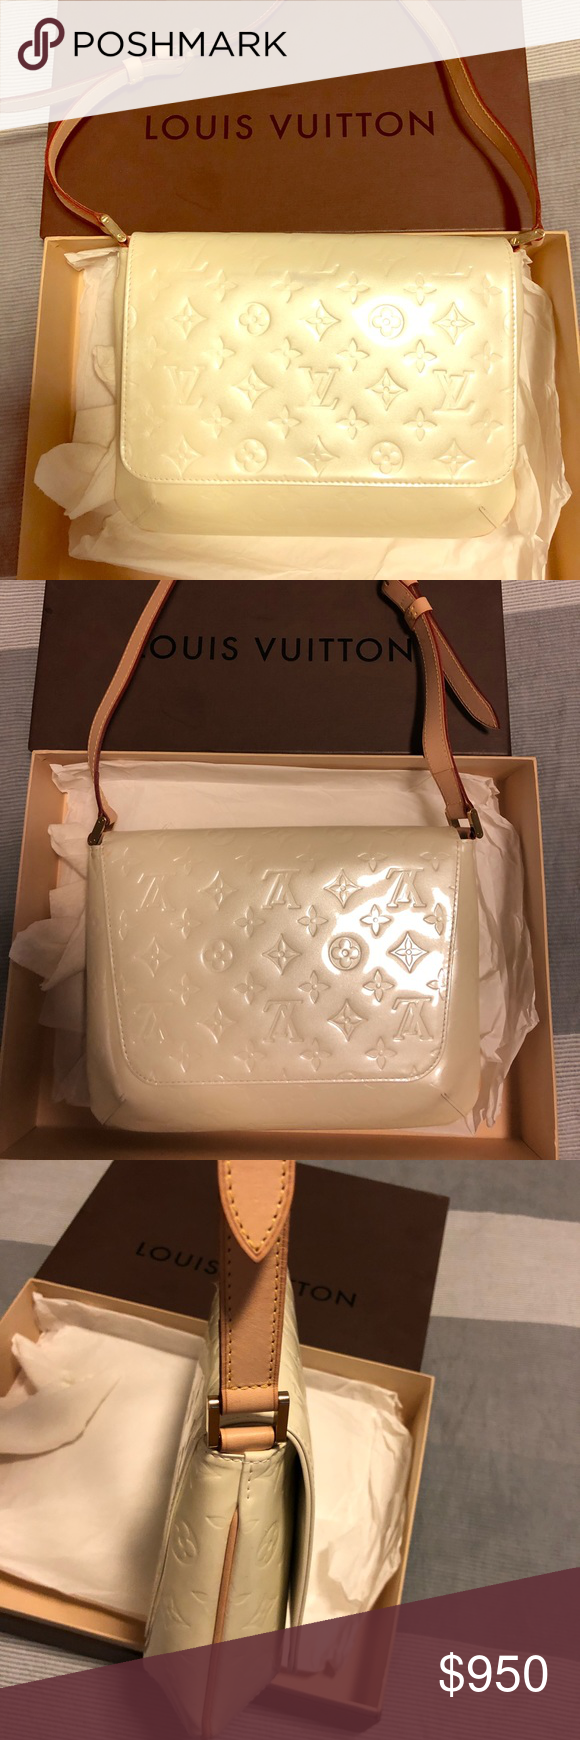 3f0b4b2010bc Louis Vuitton Thompson Street Leather Vernis Authentic Louis Vuitton Pearl  White Leather Venir Purse. Only